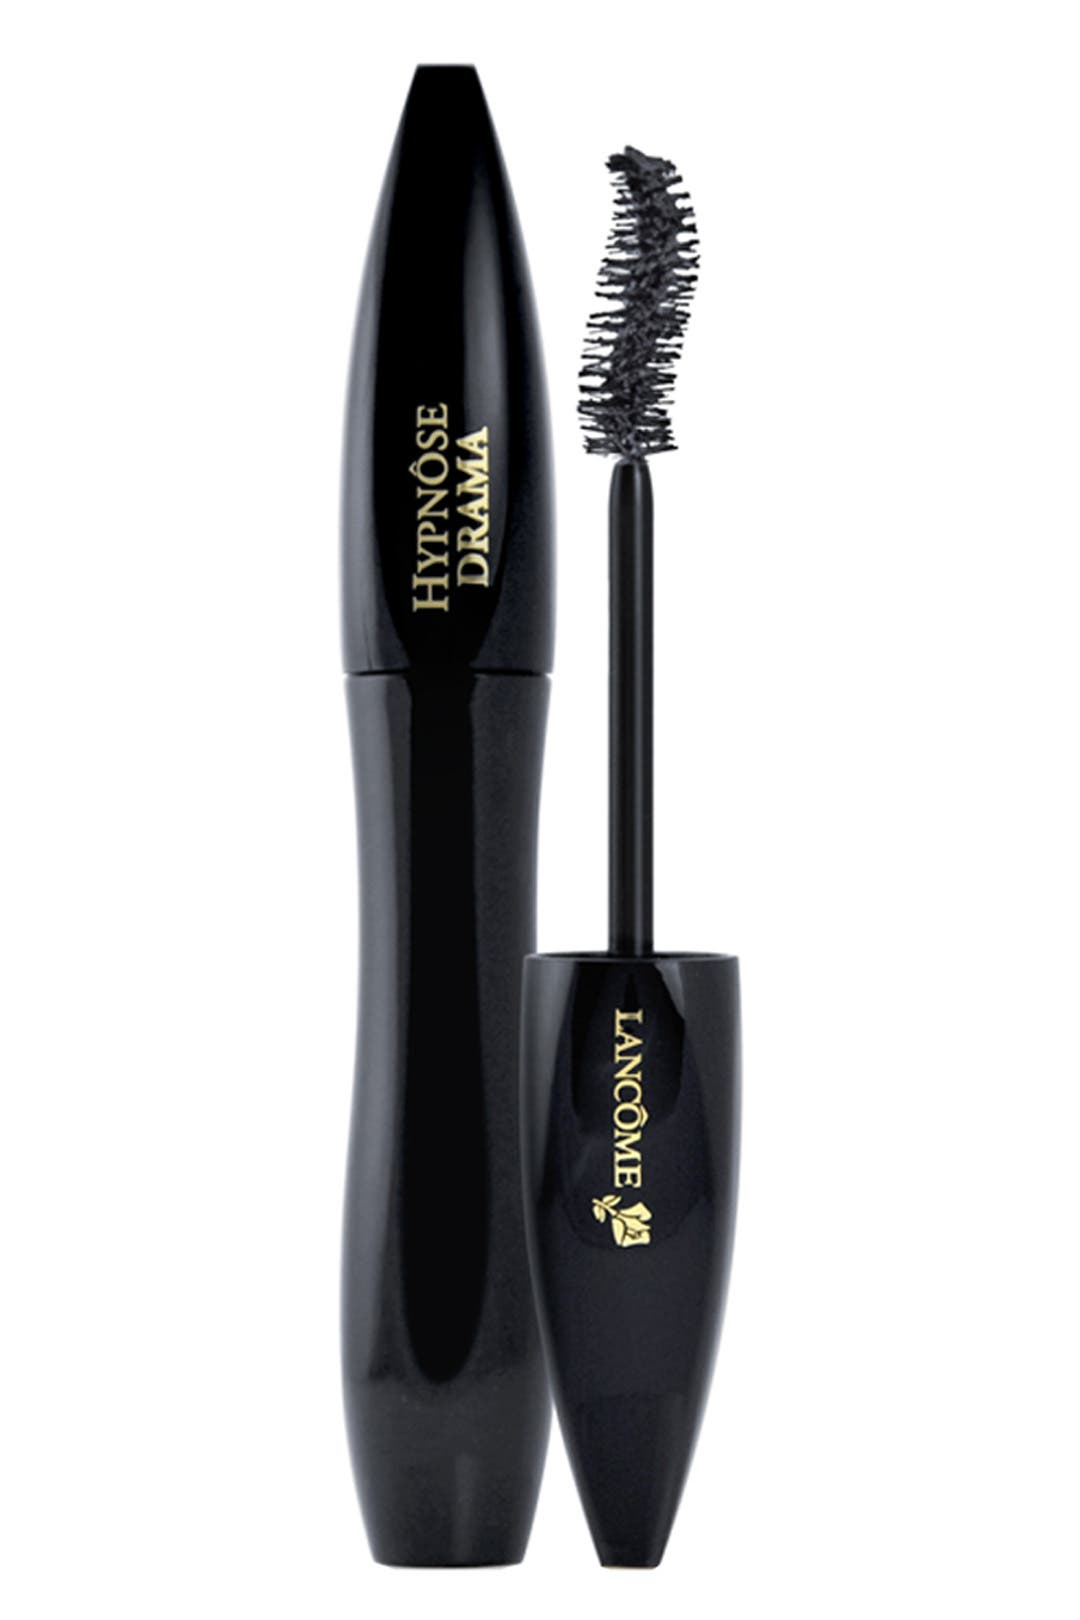 Hypnôse Drama Instant Full Body Volume Mascara by LANCÔME